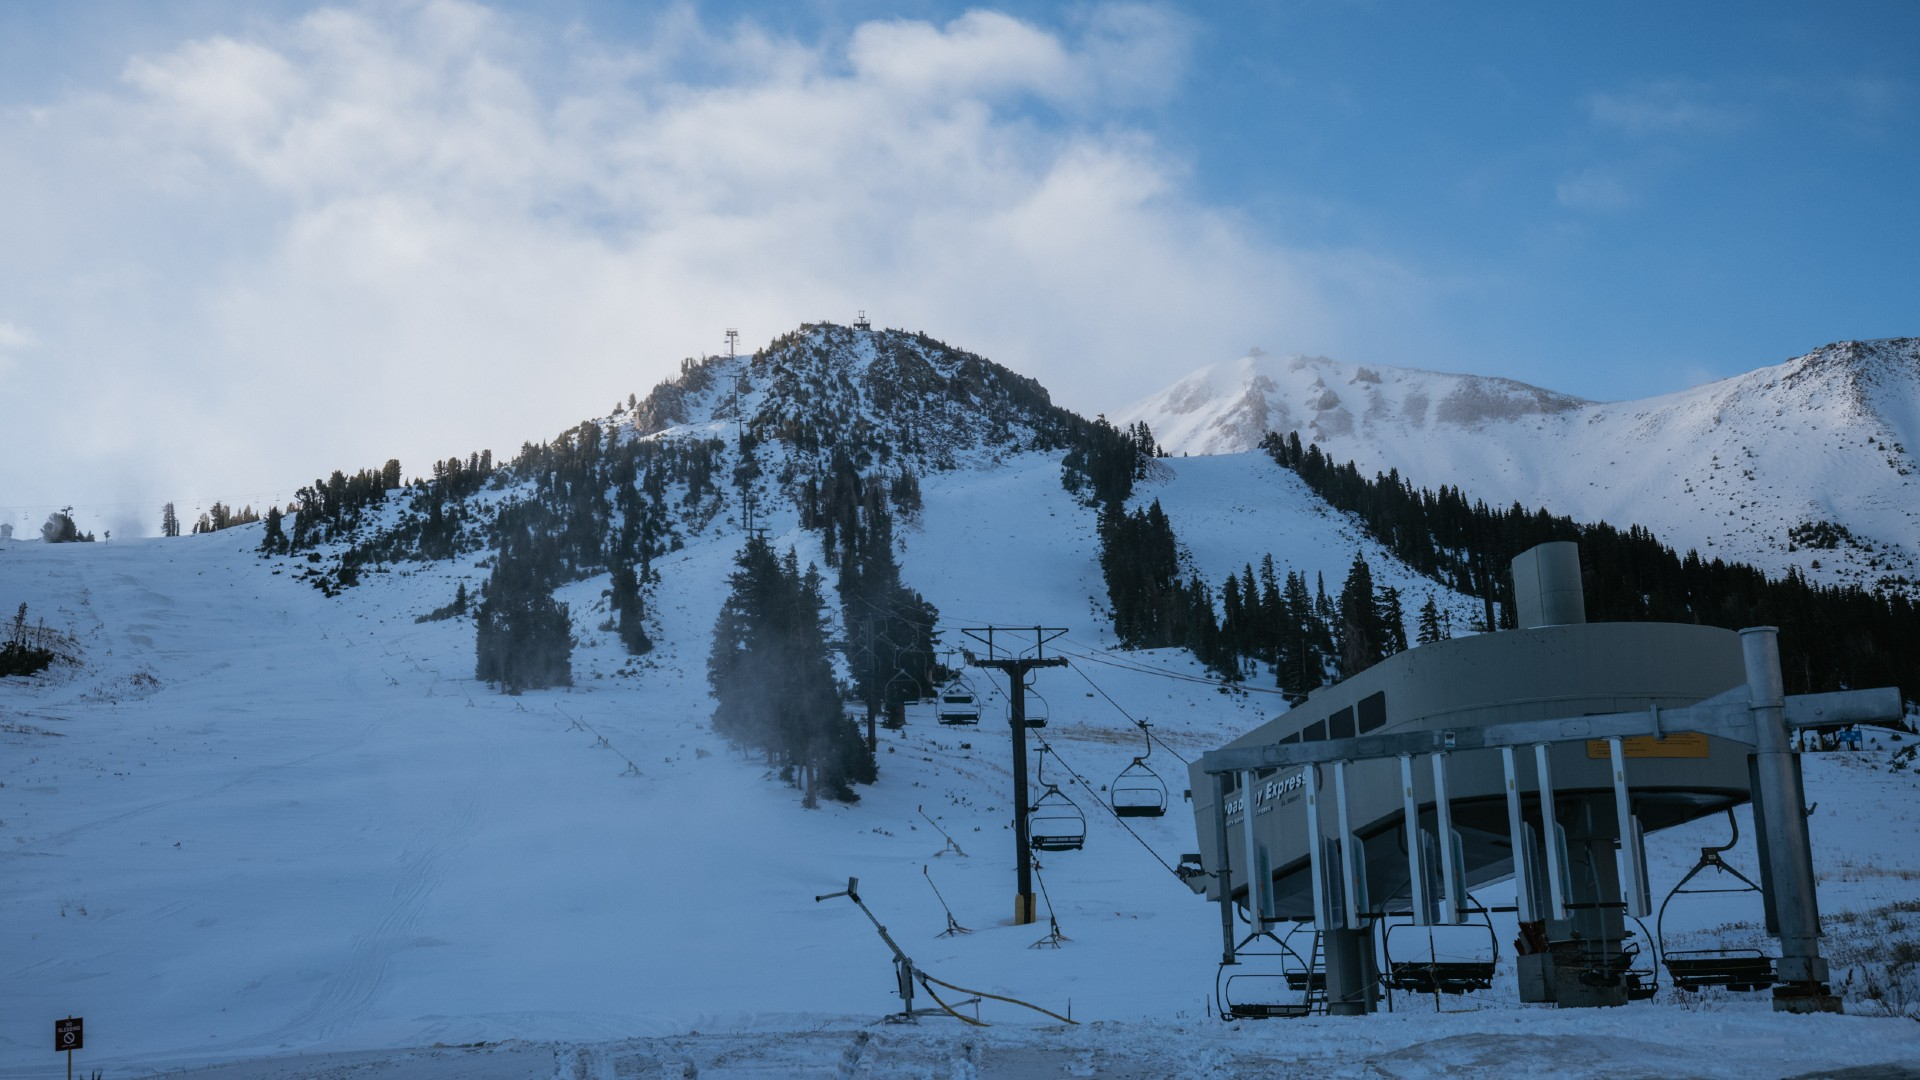 A Mammoth Mountain lift is seen on Oct. 18, 2021. (Peter Morning)